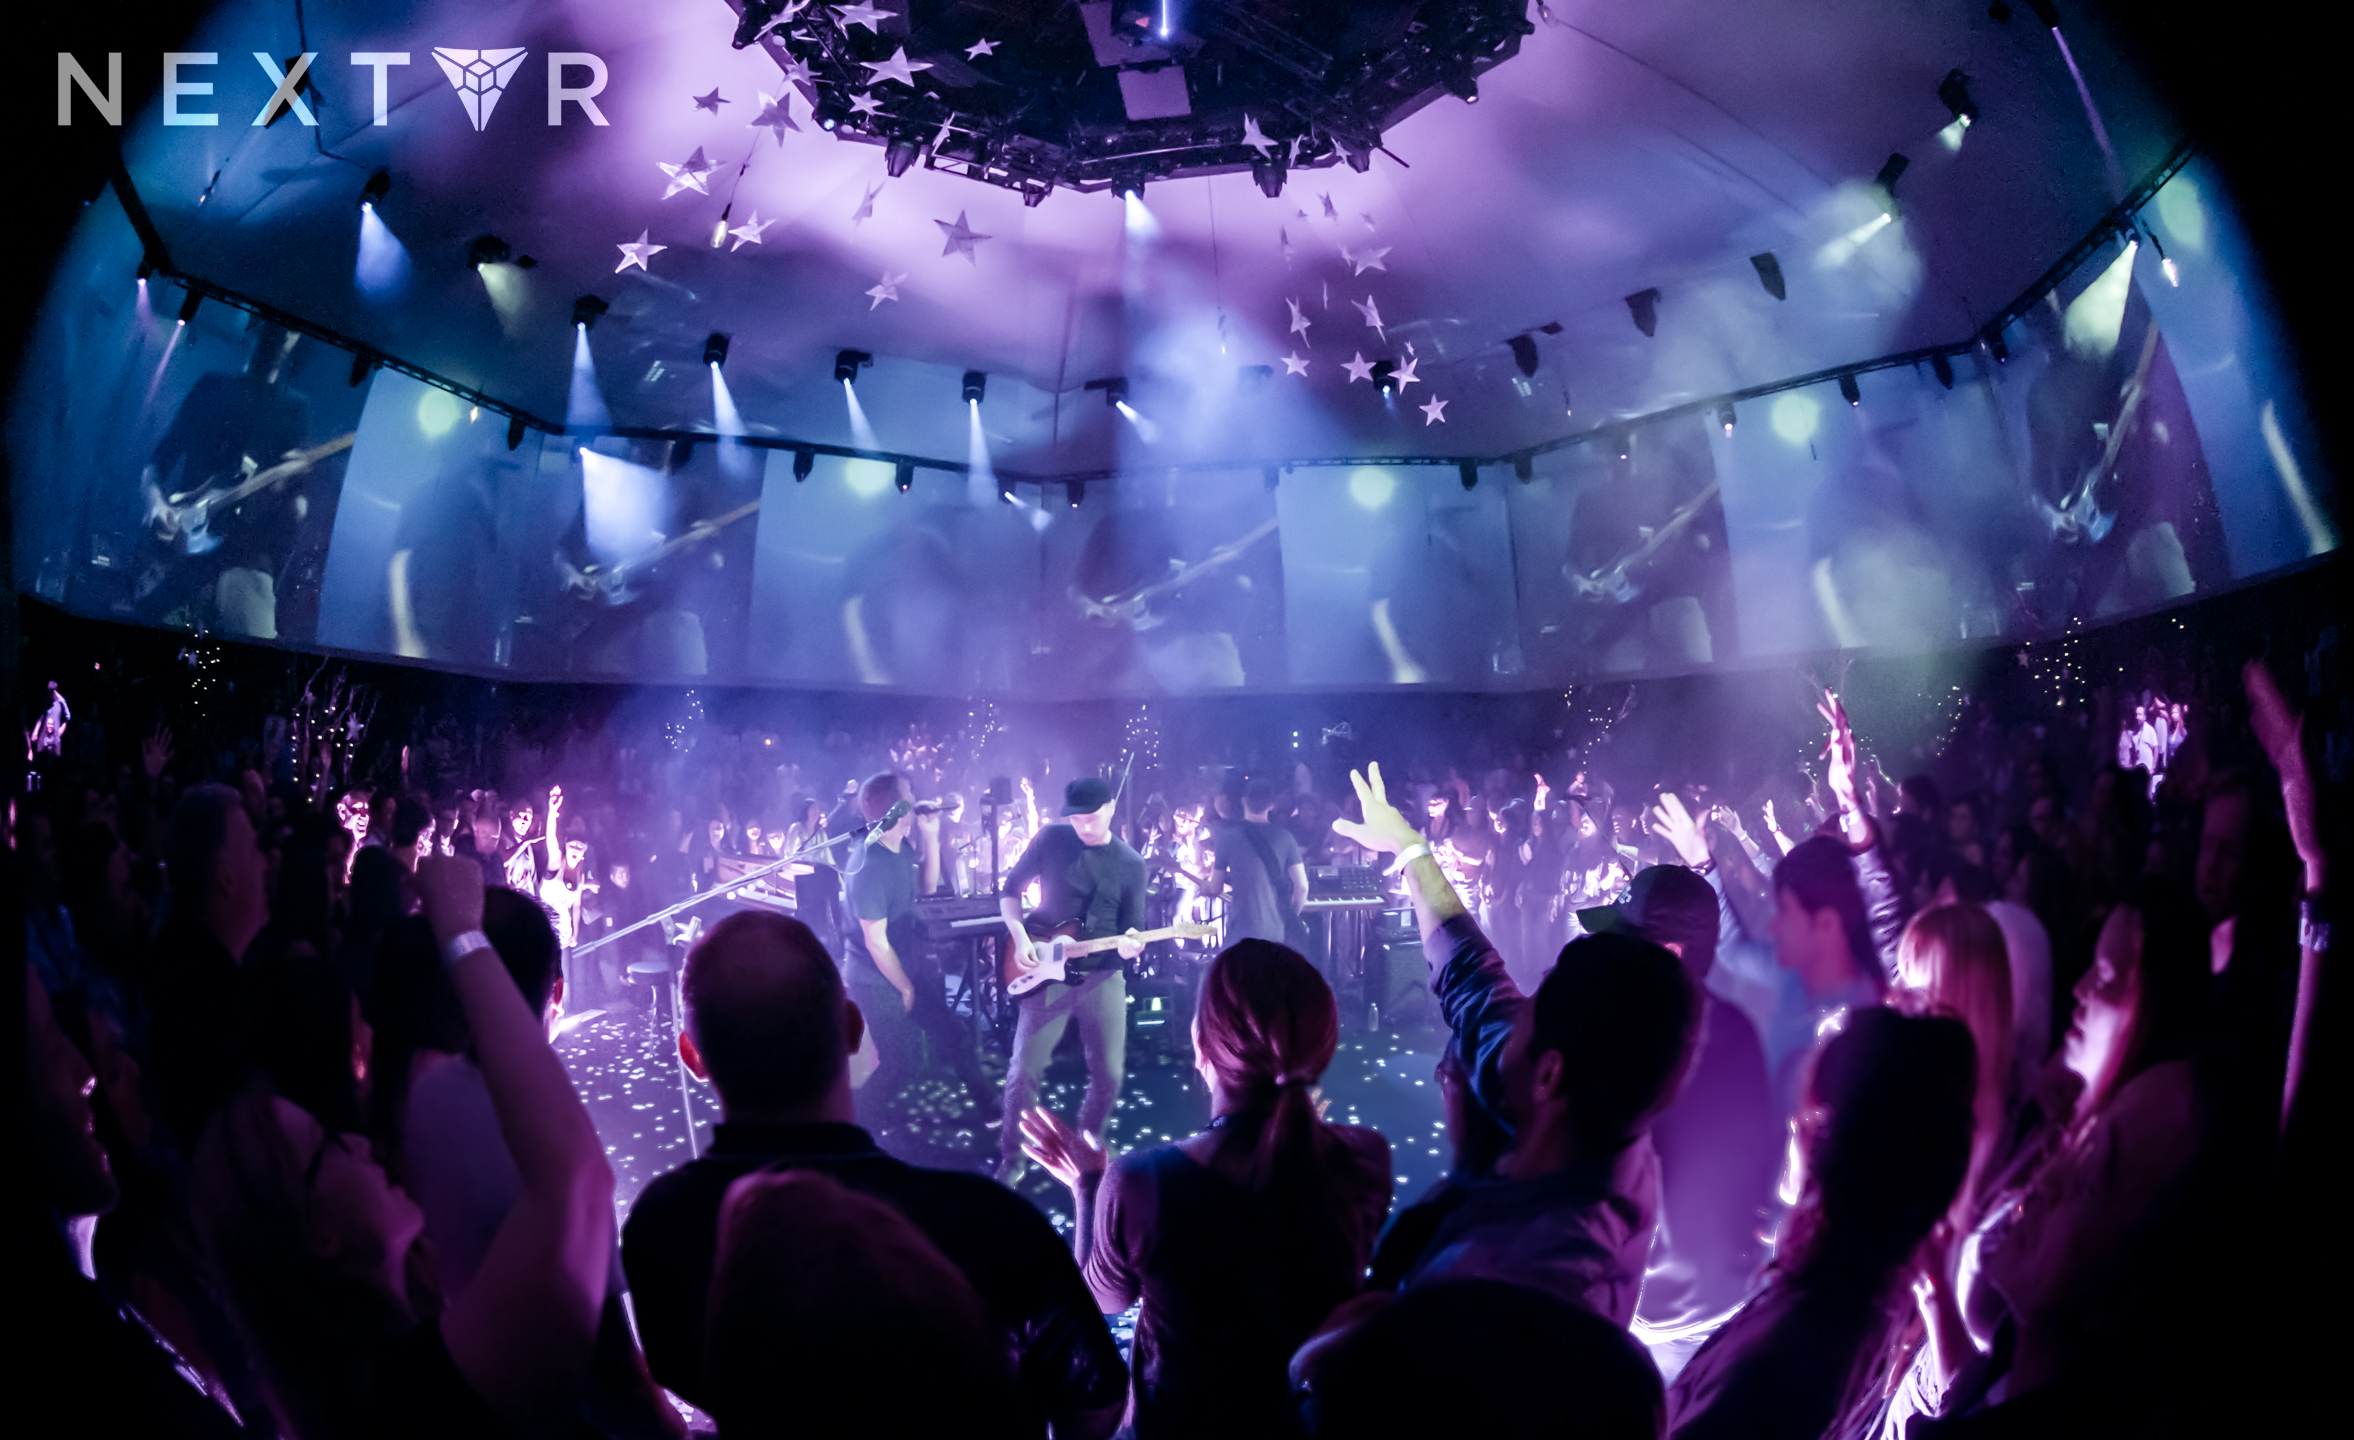 Coldplay performed a virtual reality concert with NextVR in 2014.